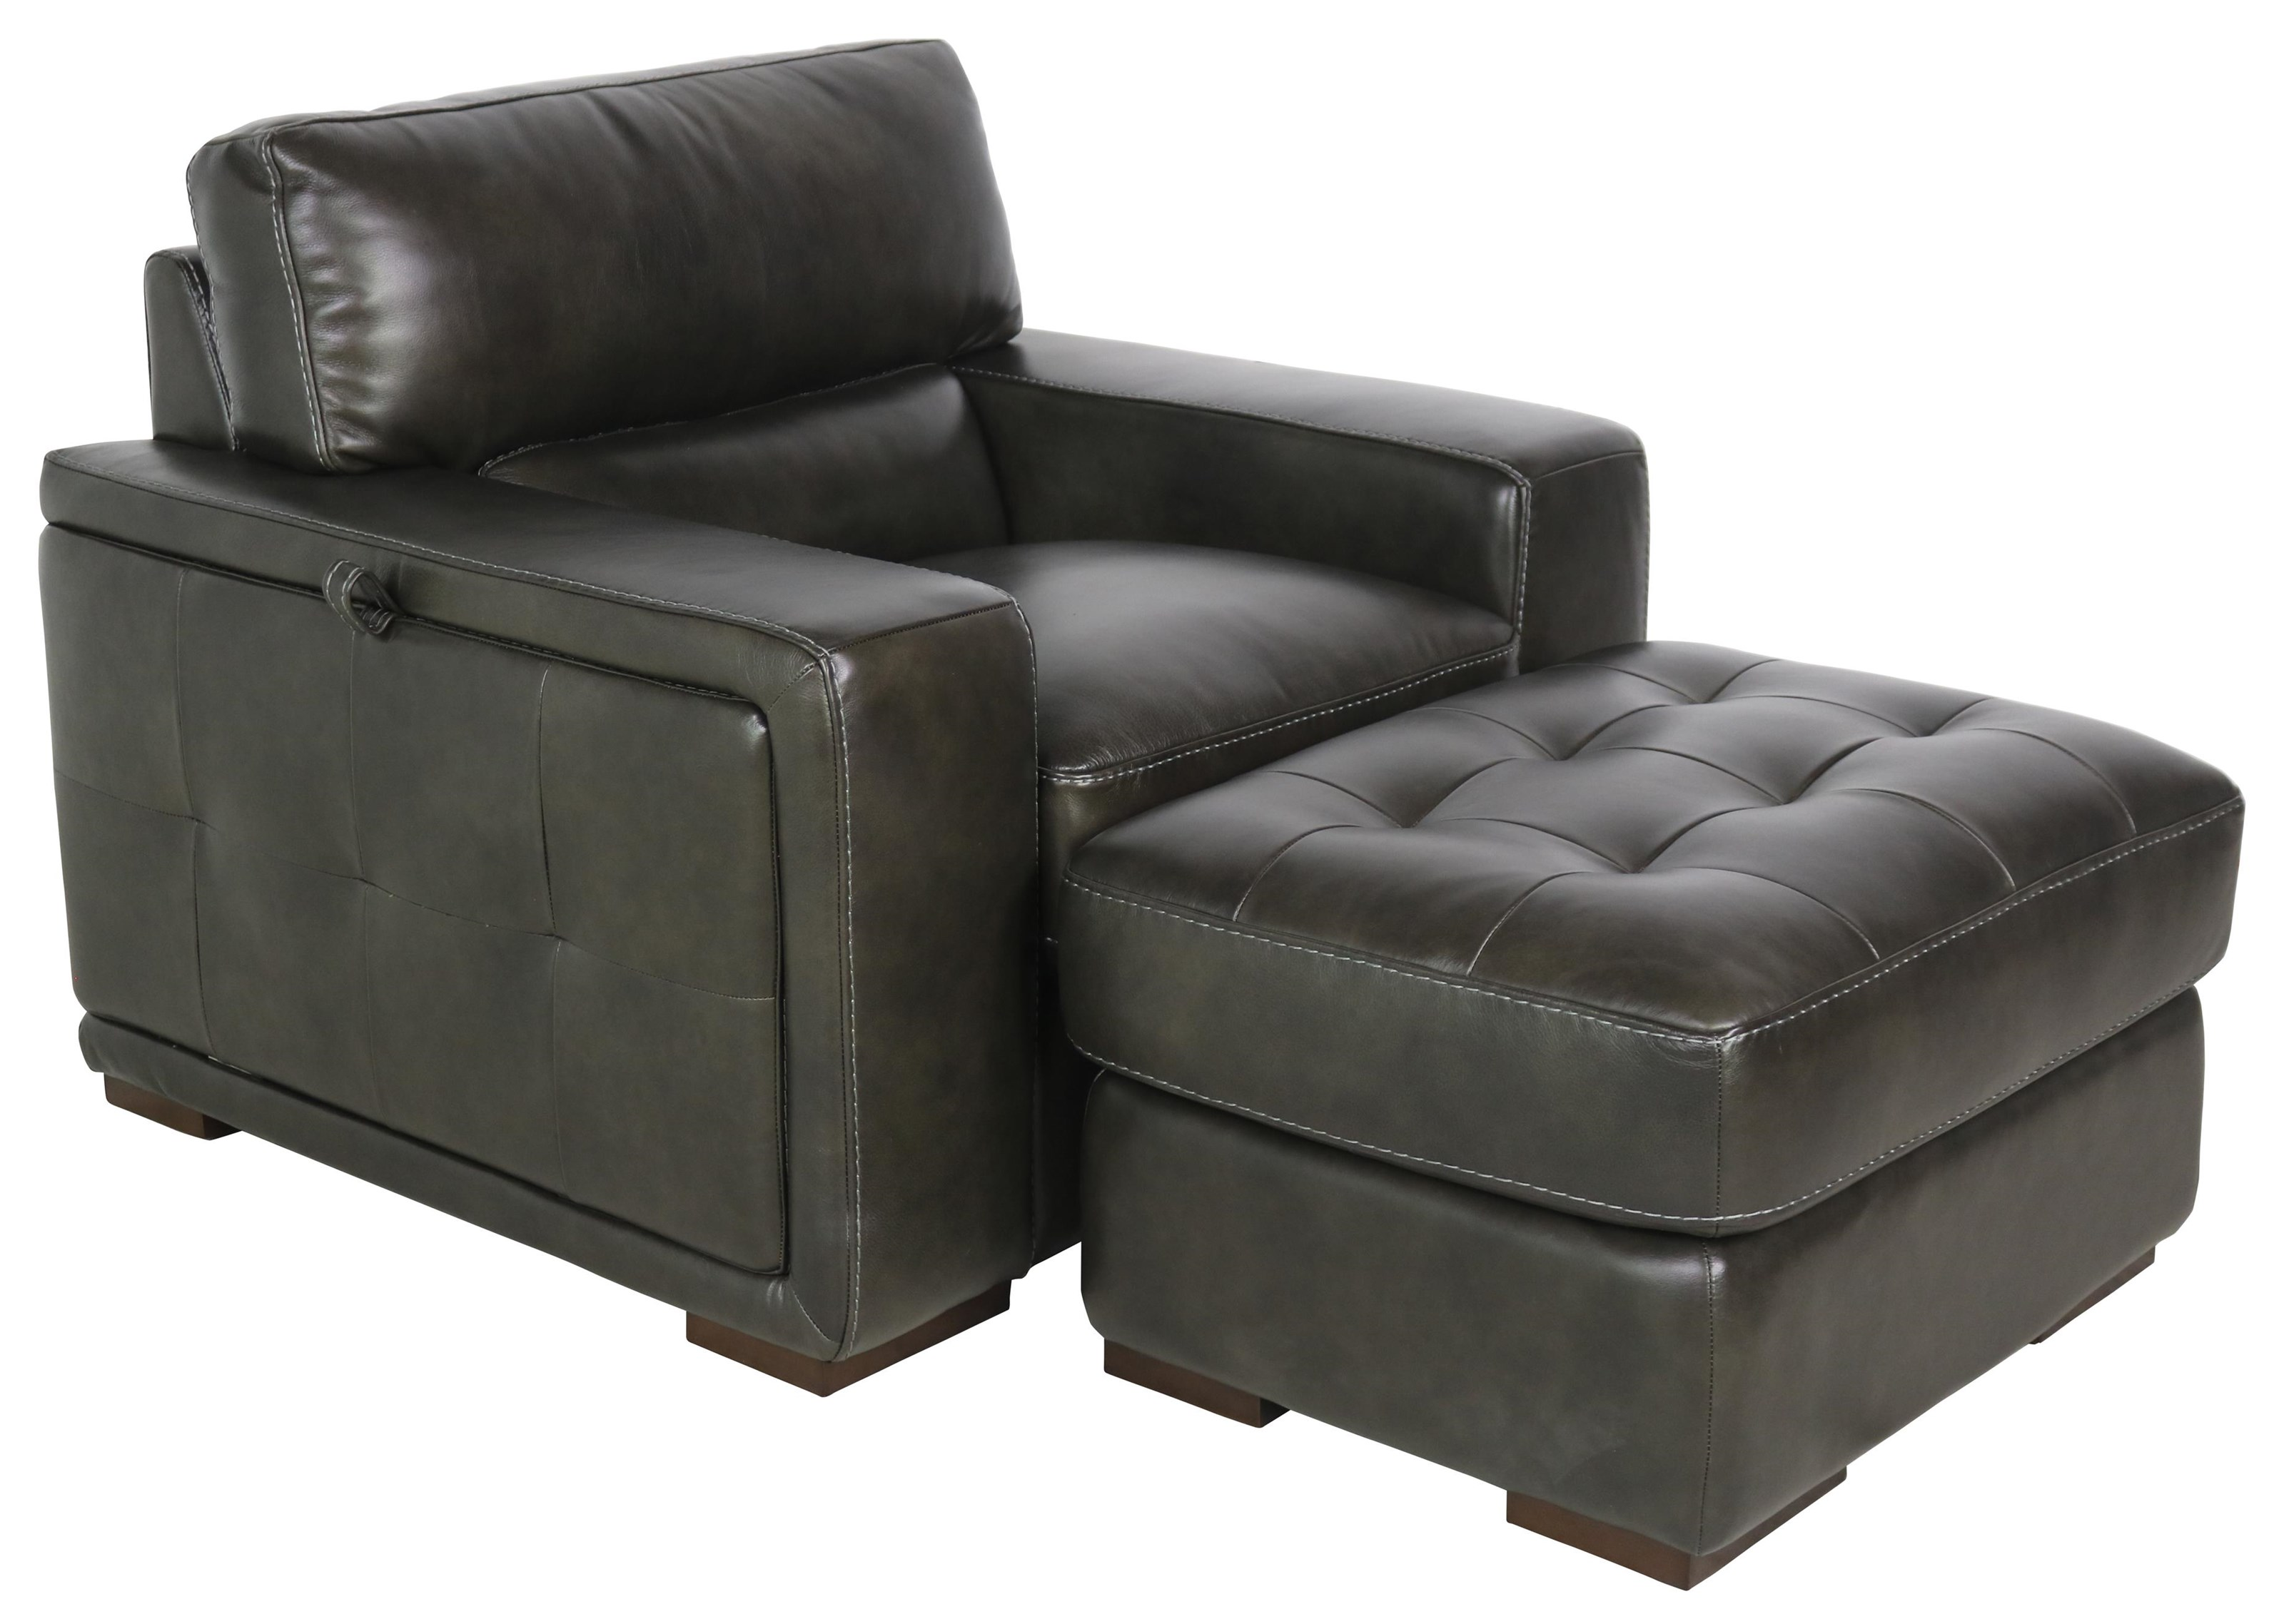 10450 Chair and Ottoman by Dante Leather at Sprintz Furniture